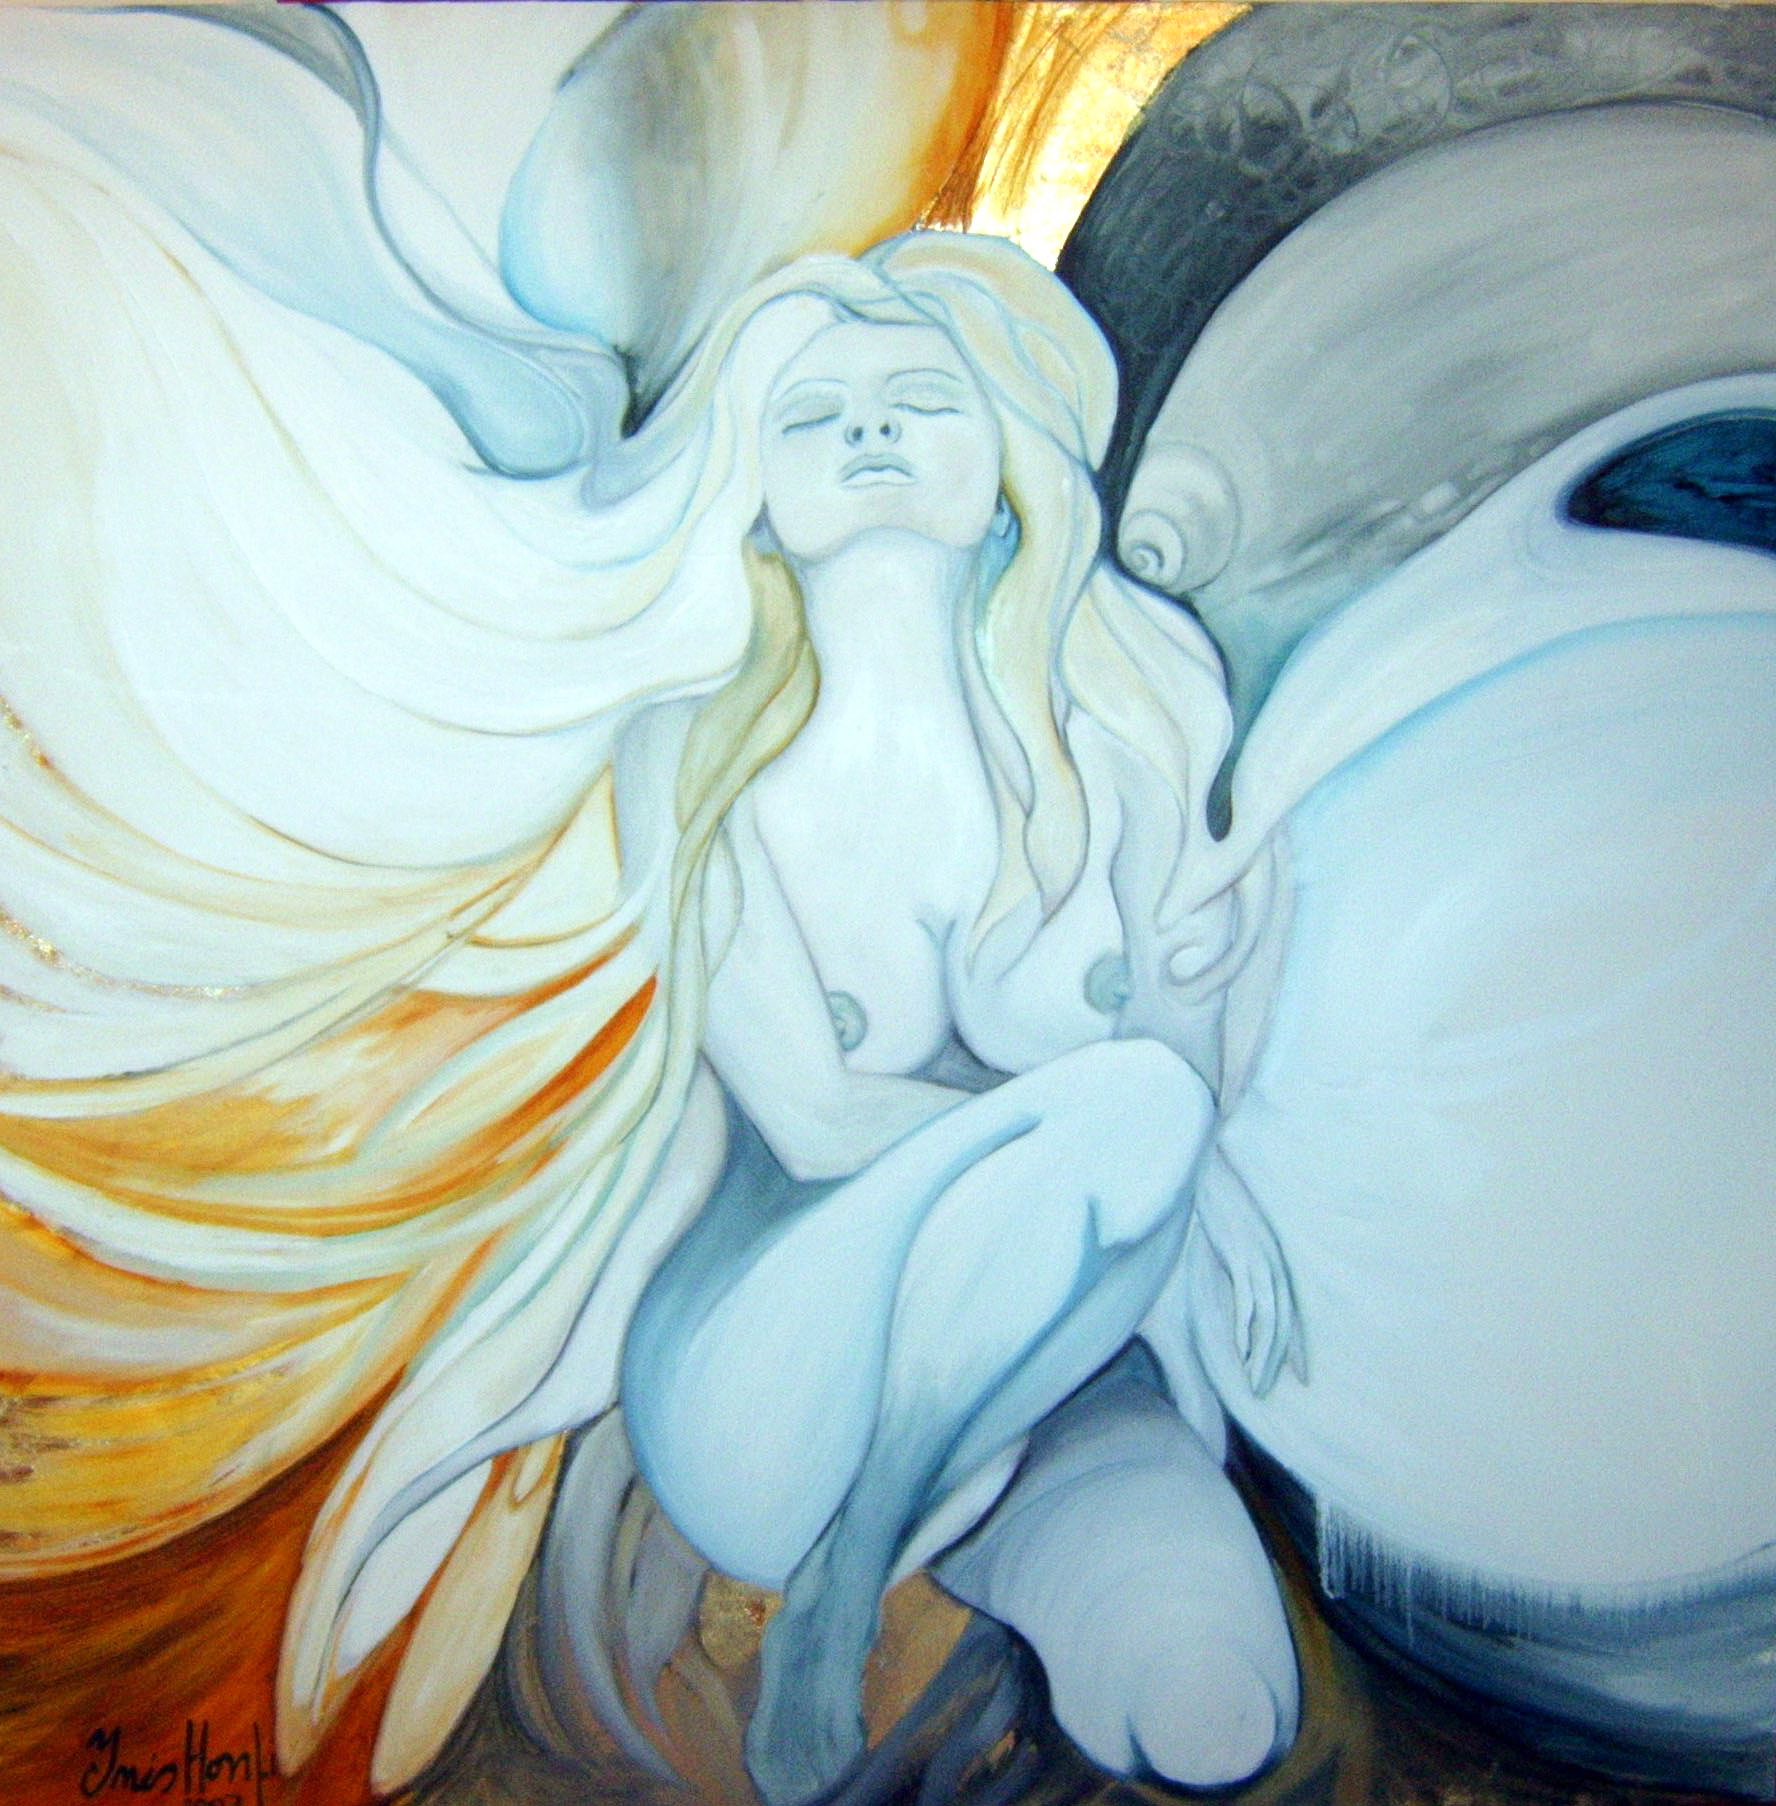 The Angel - 120x120cm - Oil on Canvas  Inspired by the existence of our Guardian Angel